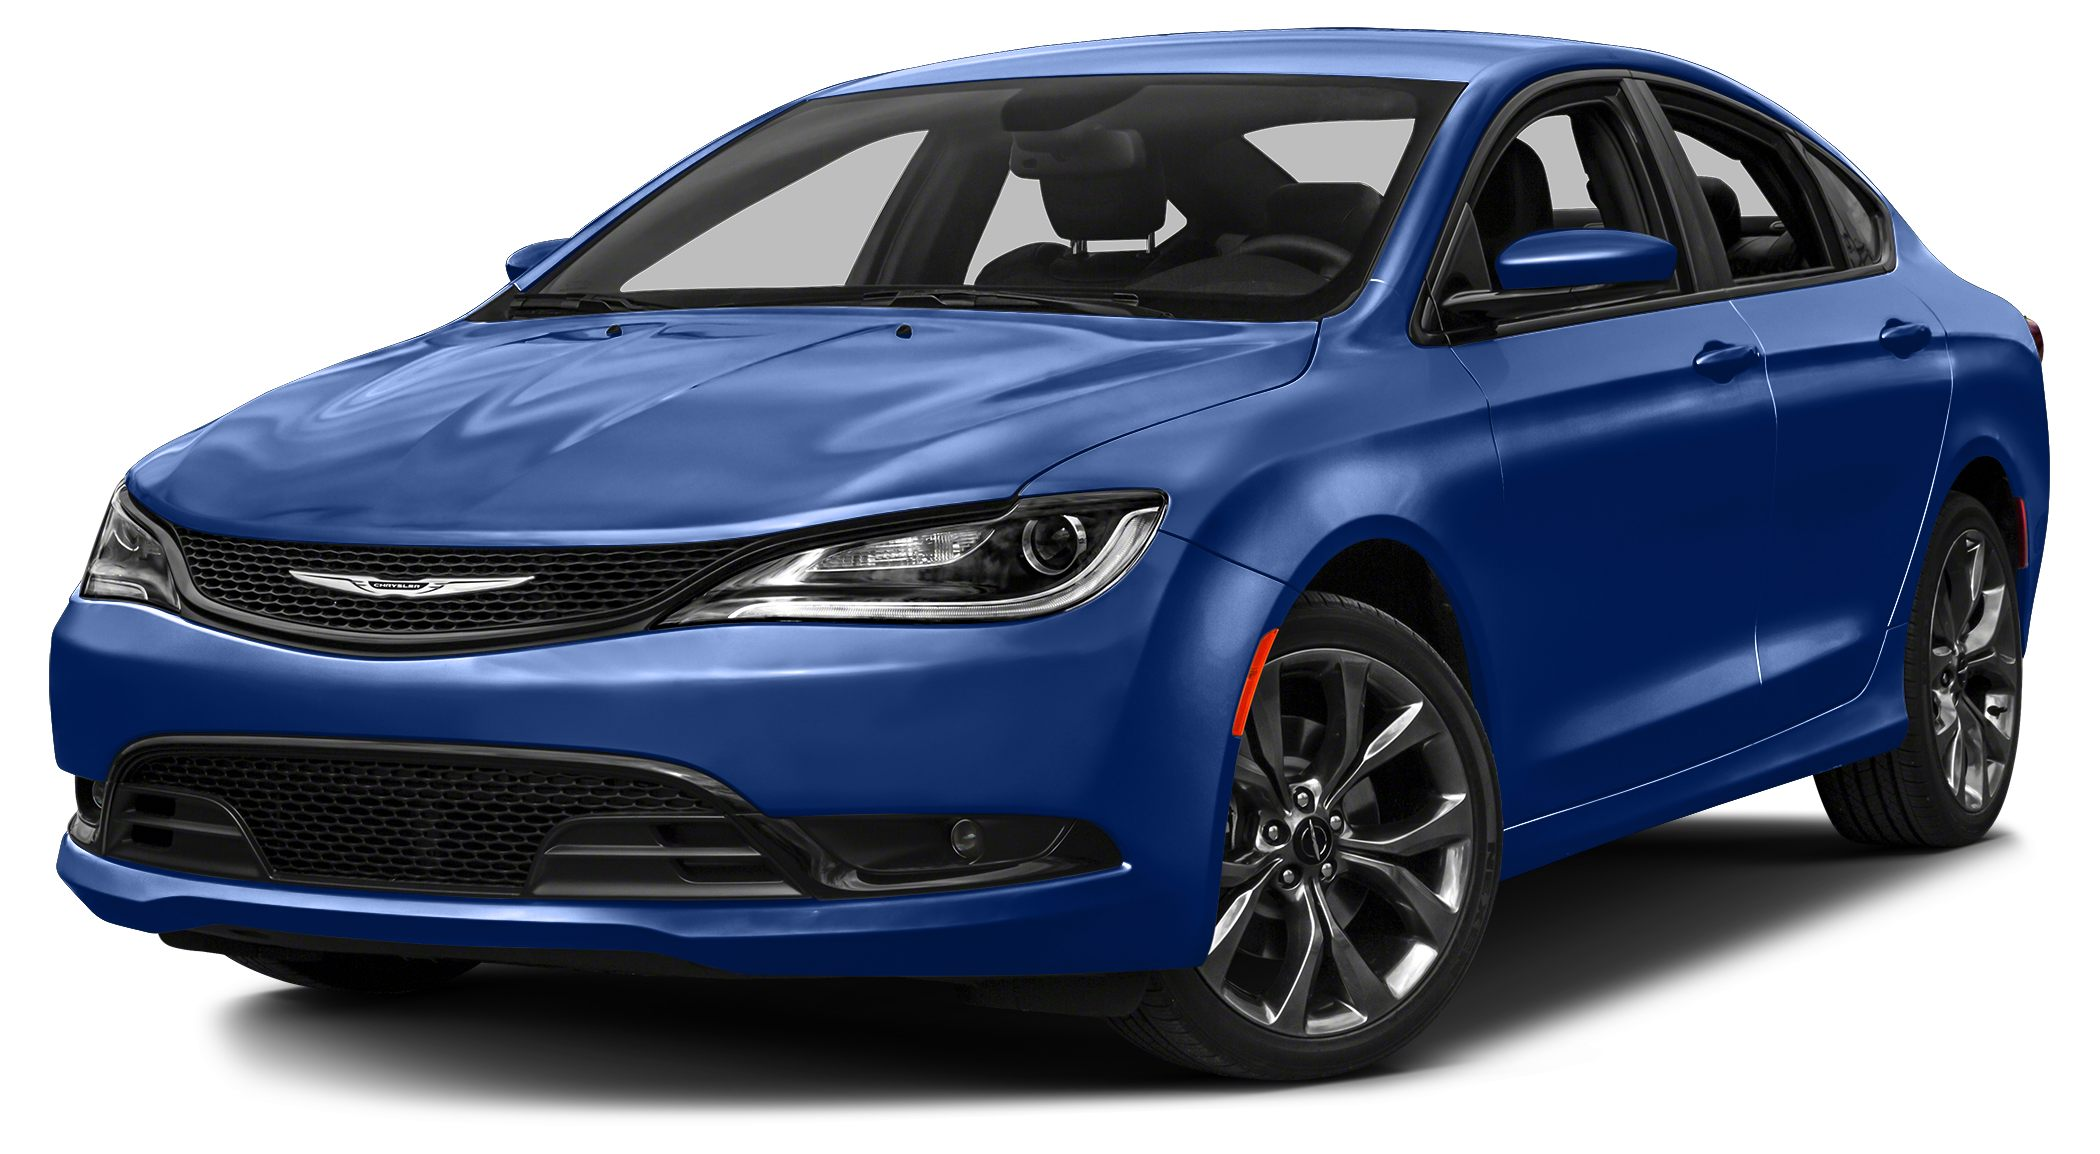 2015 Chrysler 200 S CarFax One Owner Low miles for a 2015 Navigation Back-up Camera Blu